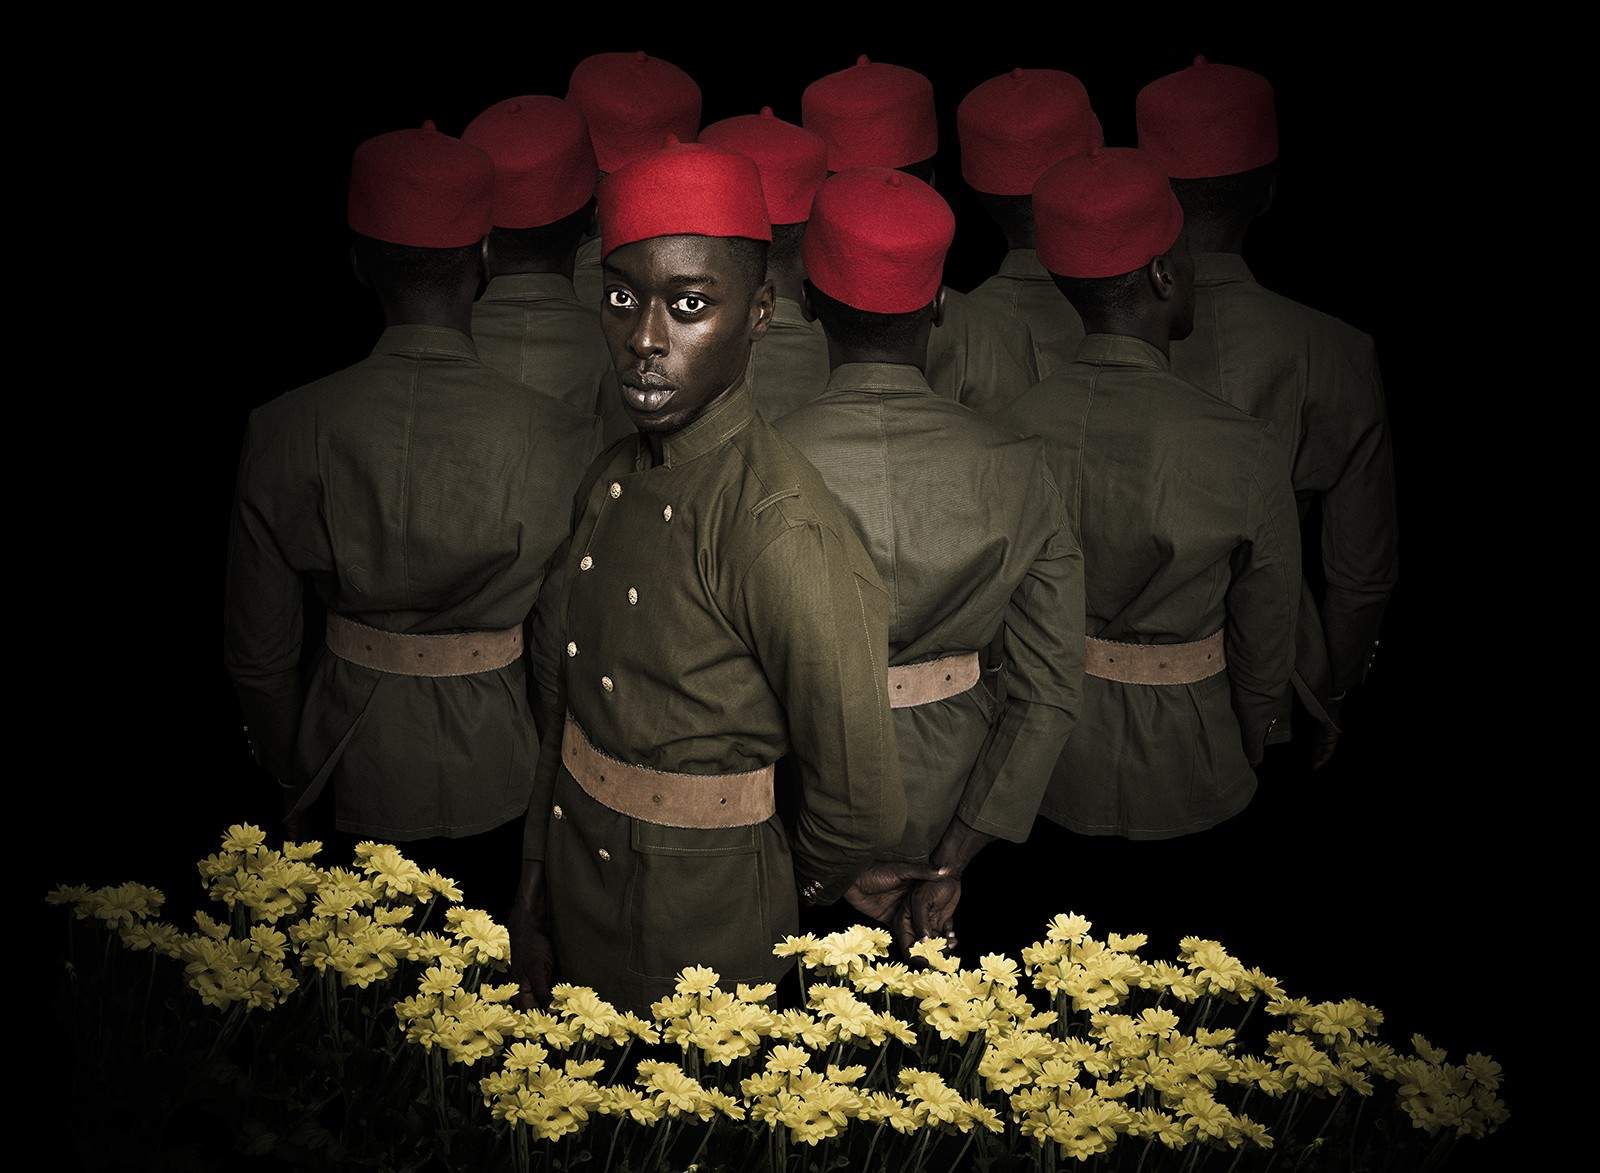 Senegalese artist Omar Victor Diop used his photos to re-expose the past, like this one, giving life to revolutionary African American heroes that have been forgotten.